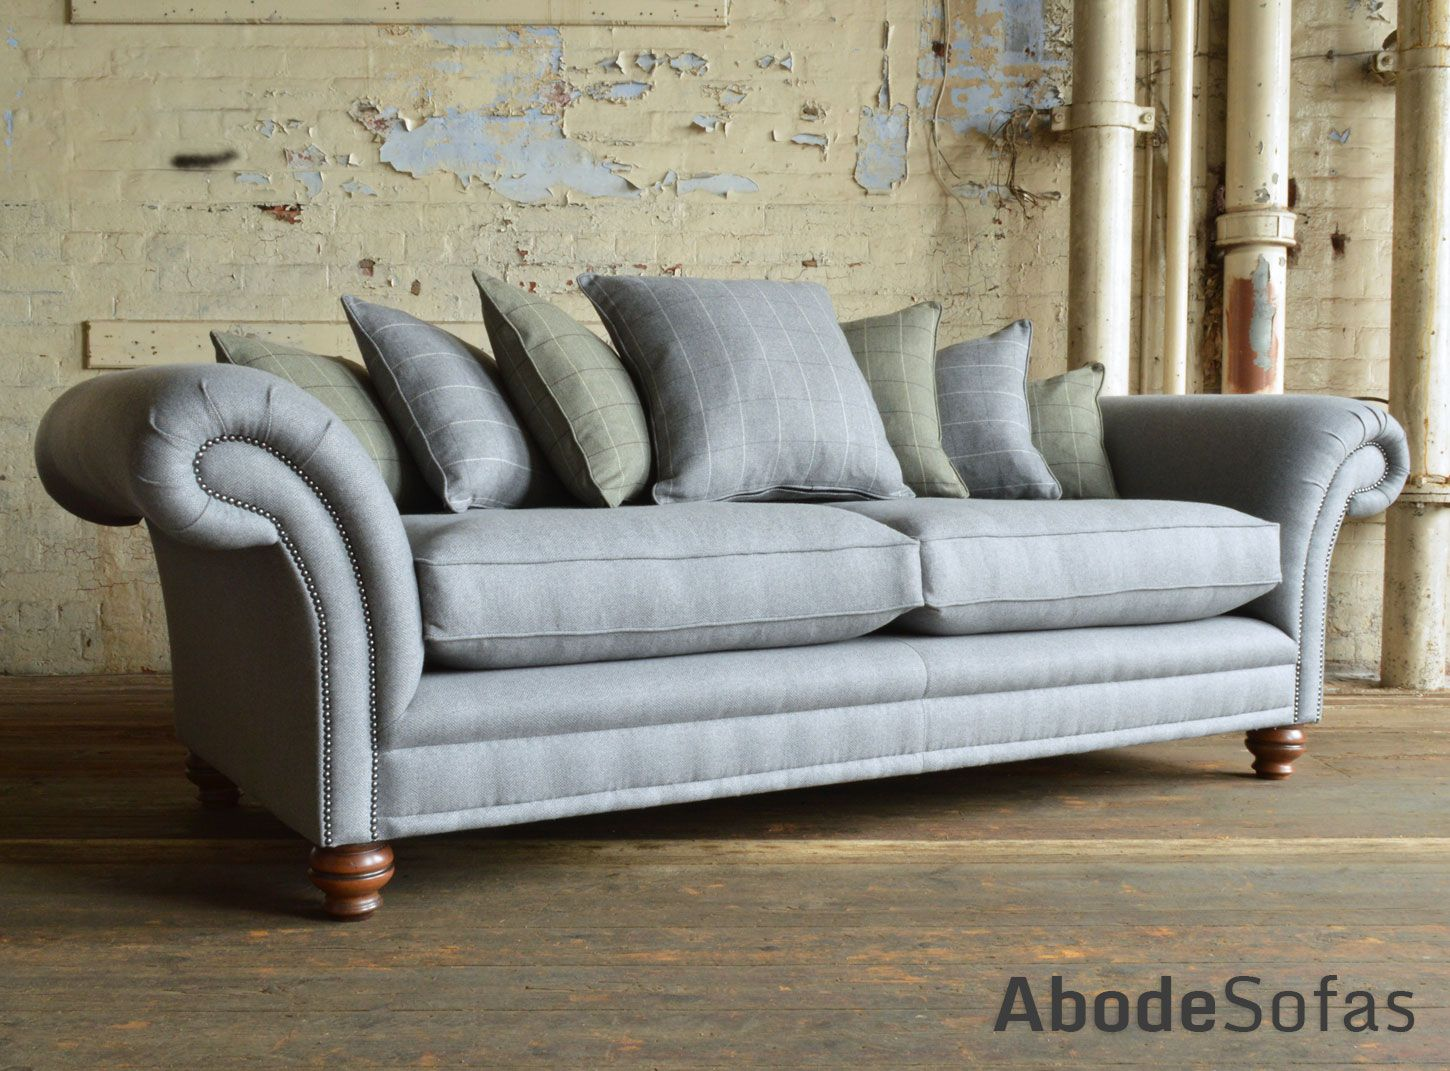 Cotswold Wool Chesterfield Sofa | Chesterfield sofa, Chesterfield ...